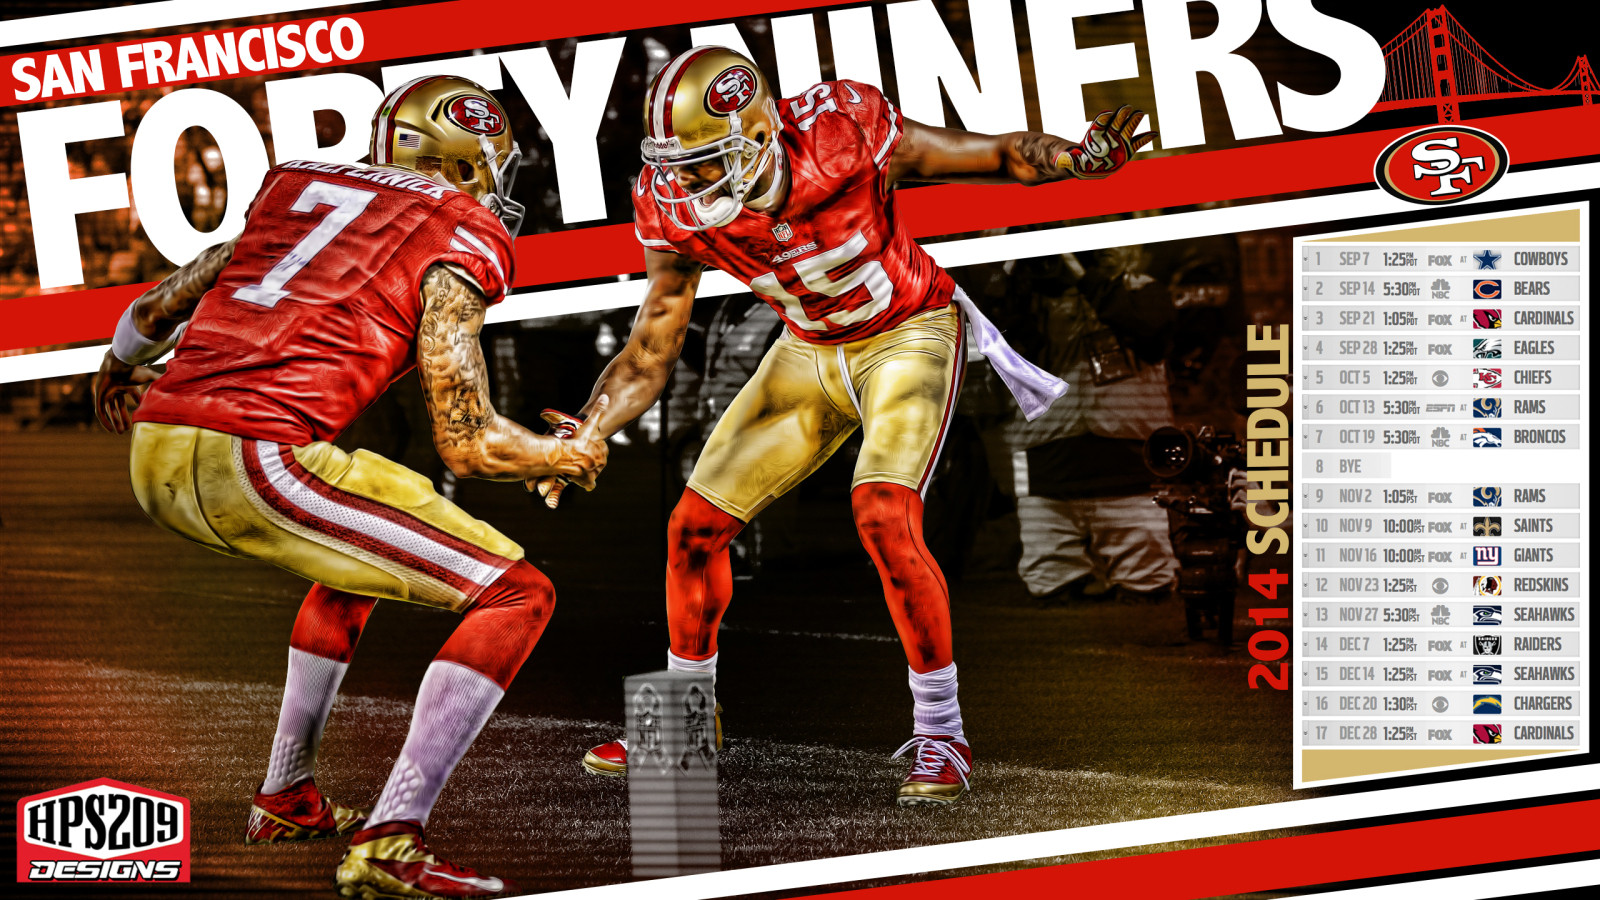 49ers 2015 Wallpapers 1600x900